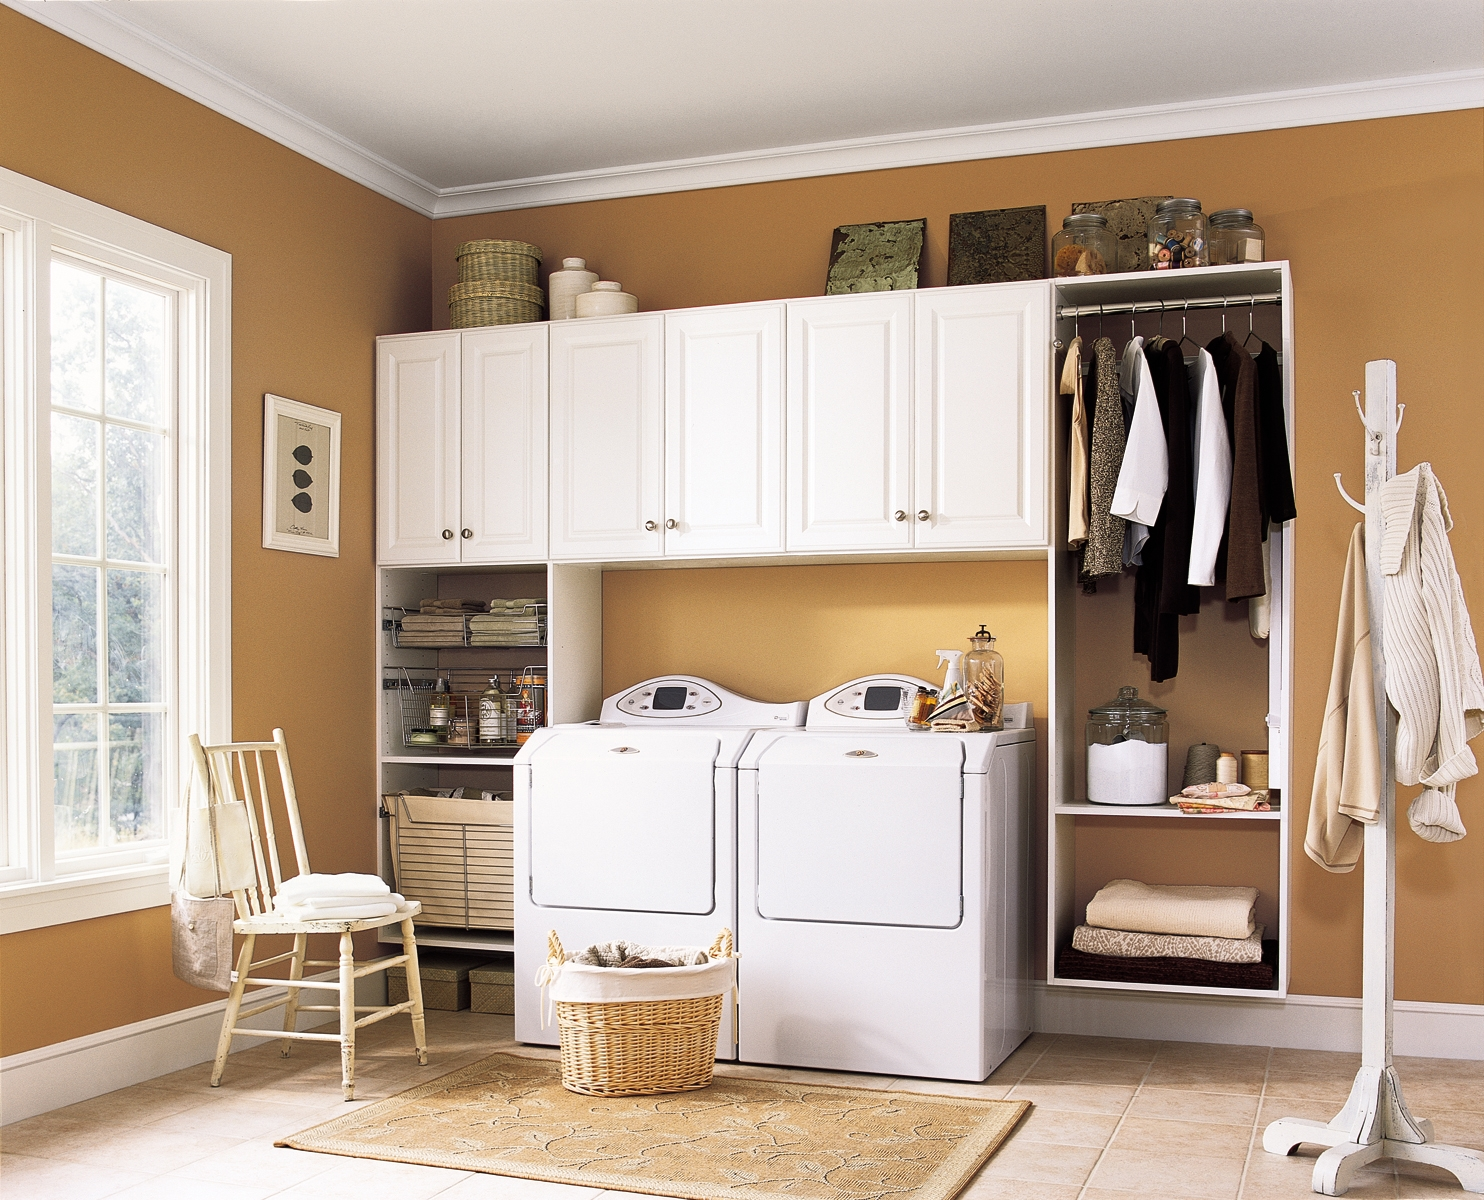 Laundry room storage organization and inspiration Design a laundr room laout